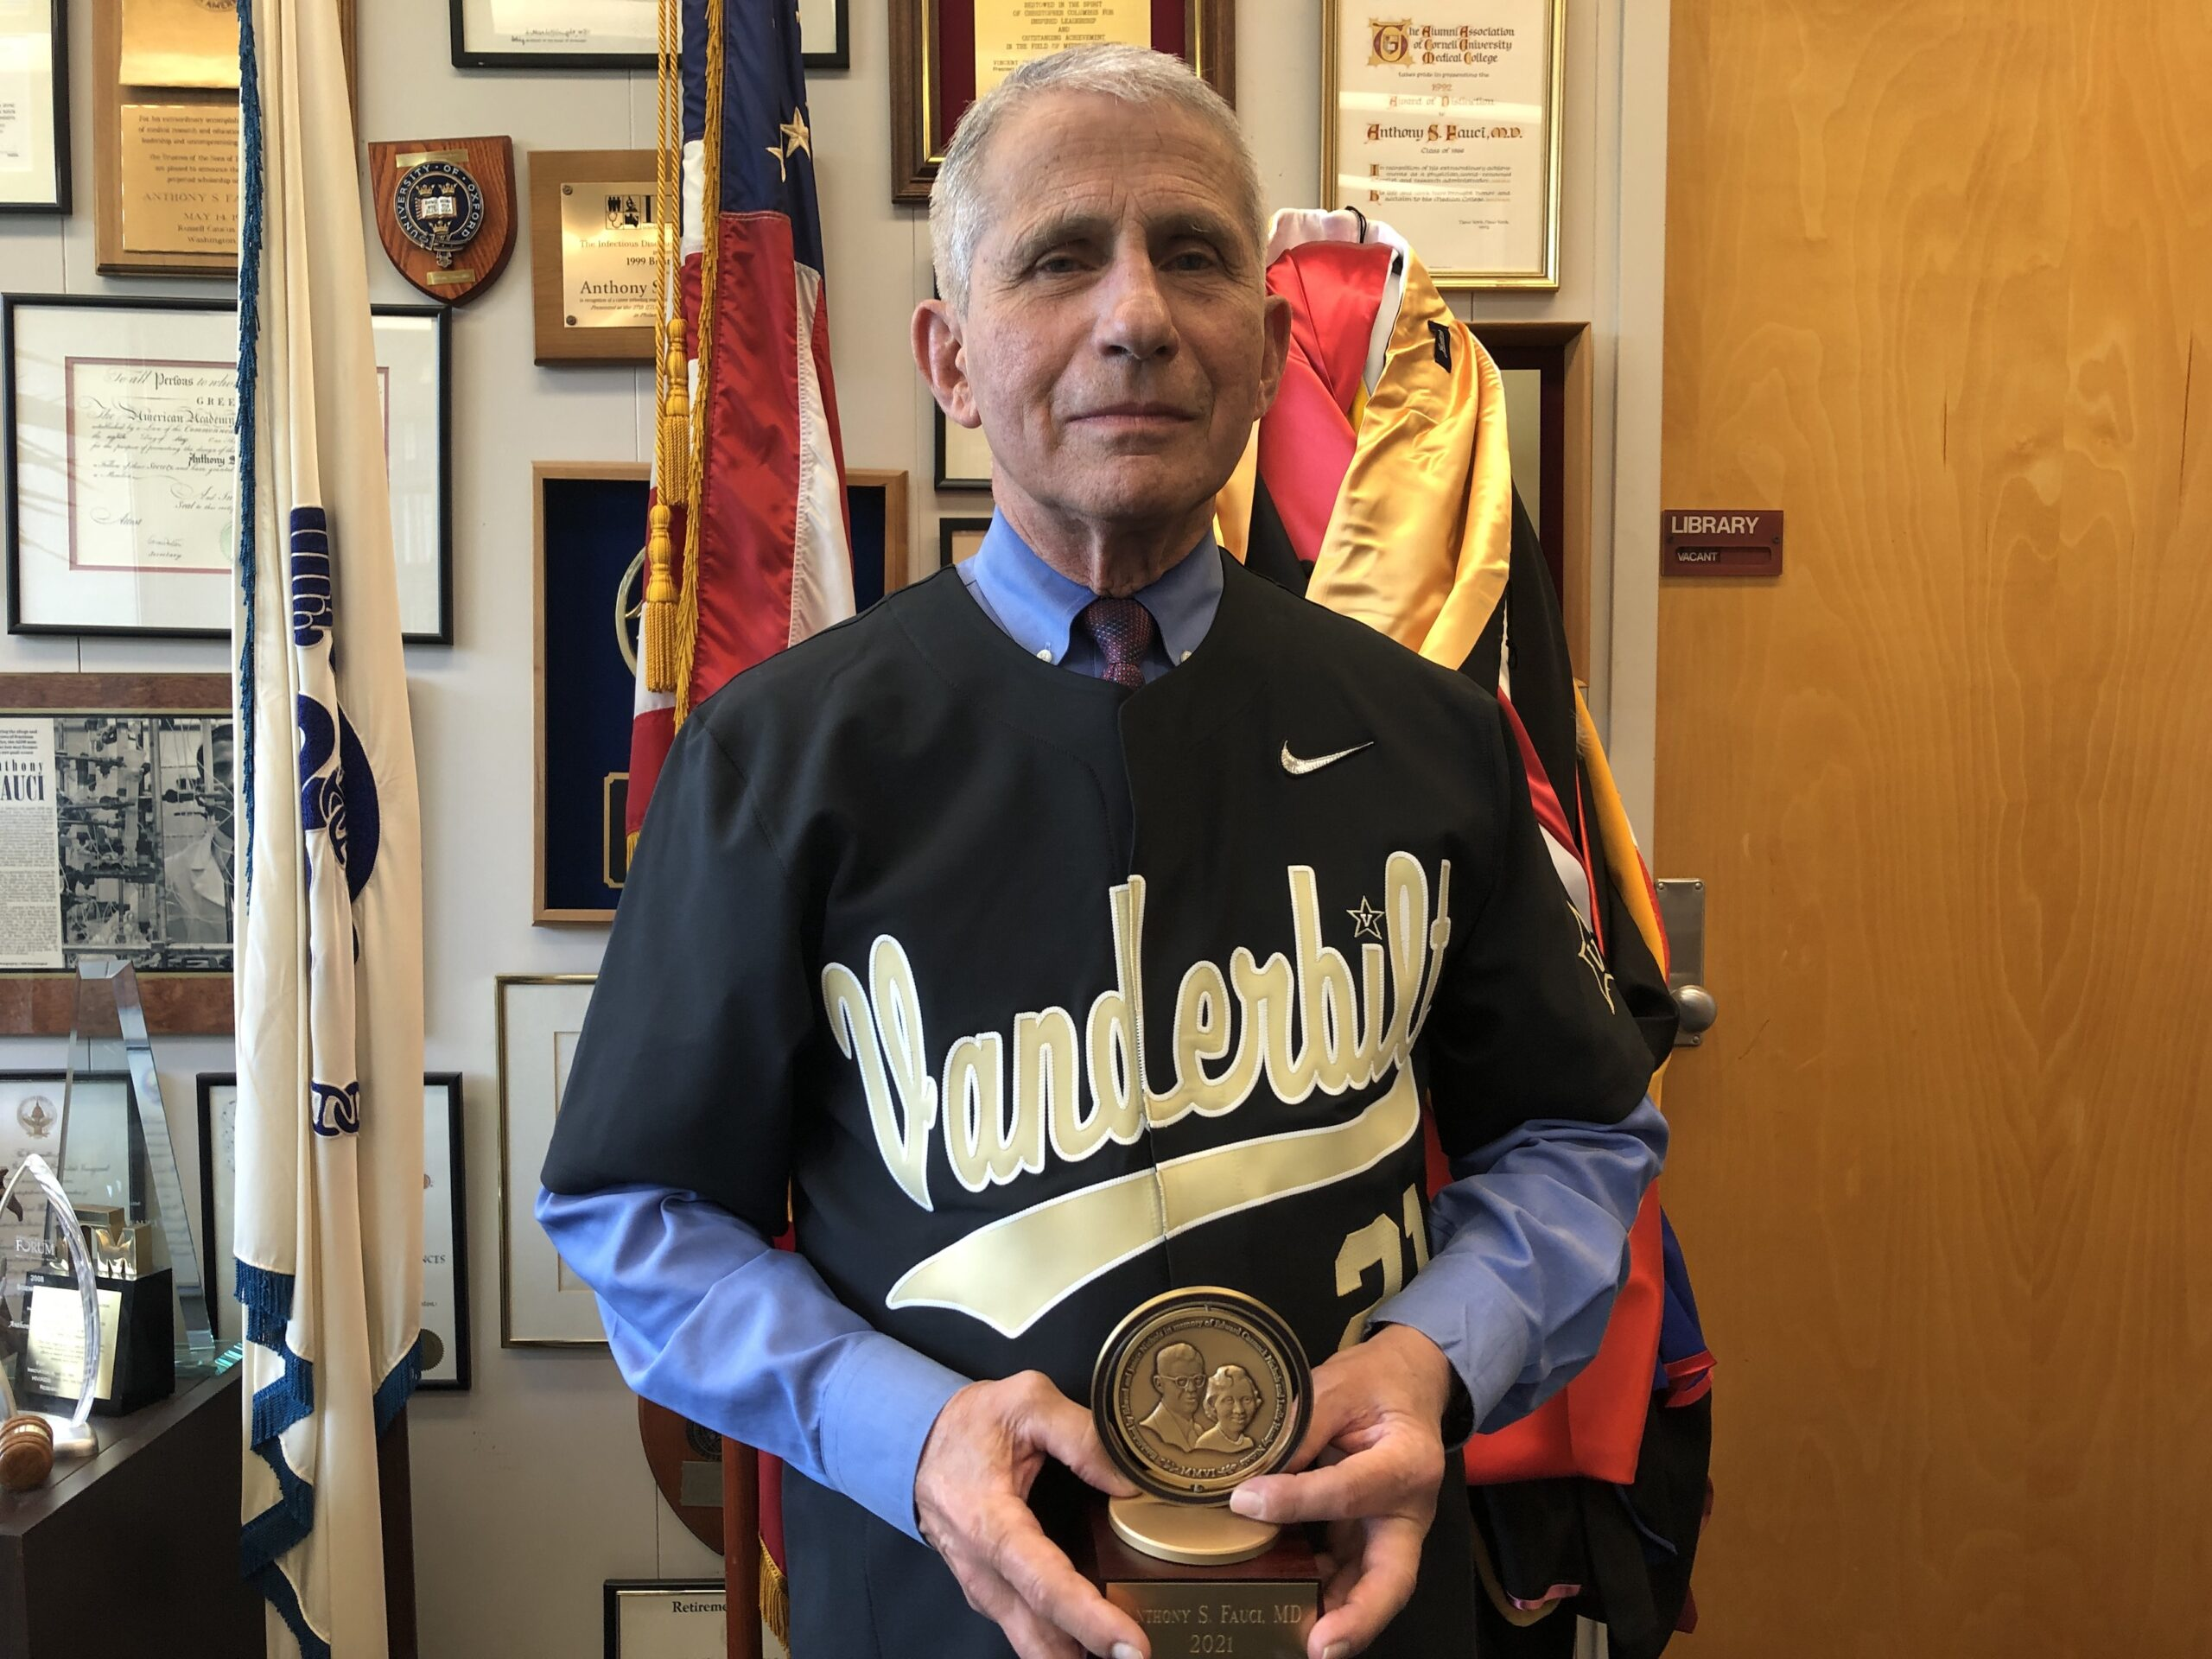 Dr. Anthony Fauci encourages Class of 2021 to lead by unifying country around shared health goals